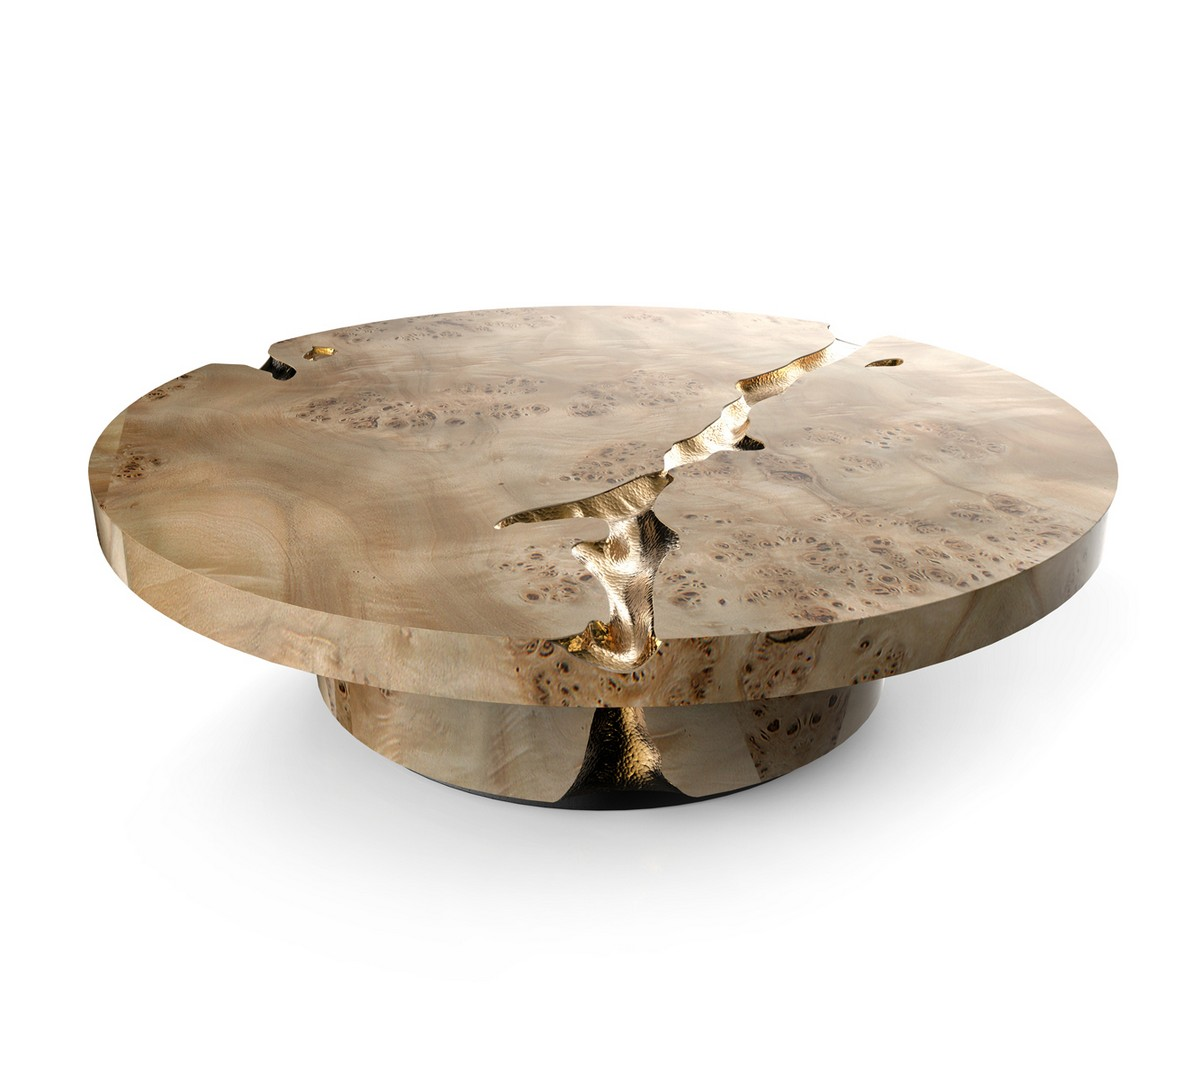 Top Luxury Coffee Tables (Part III) luxury coffee tables Top Luxury Coffee Tables (Part III) empire 1